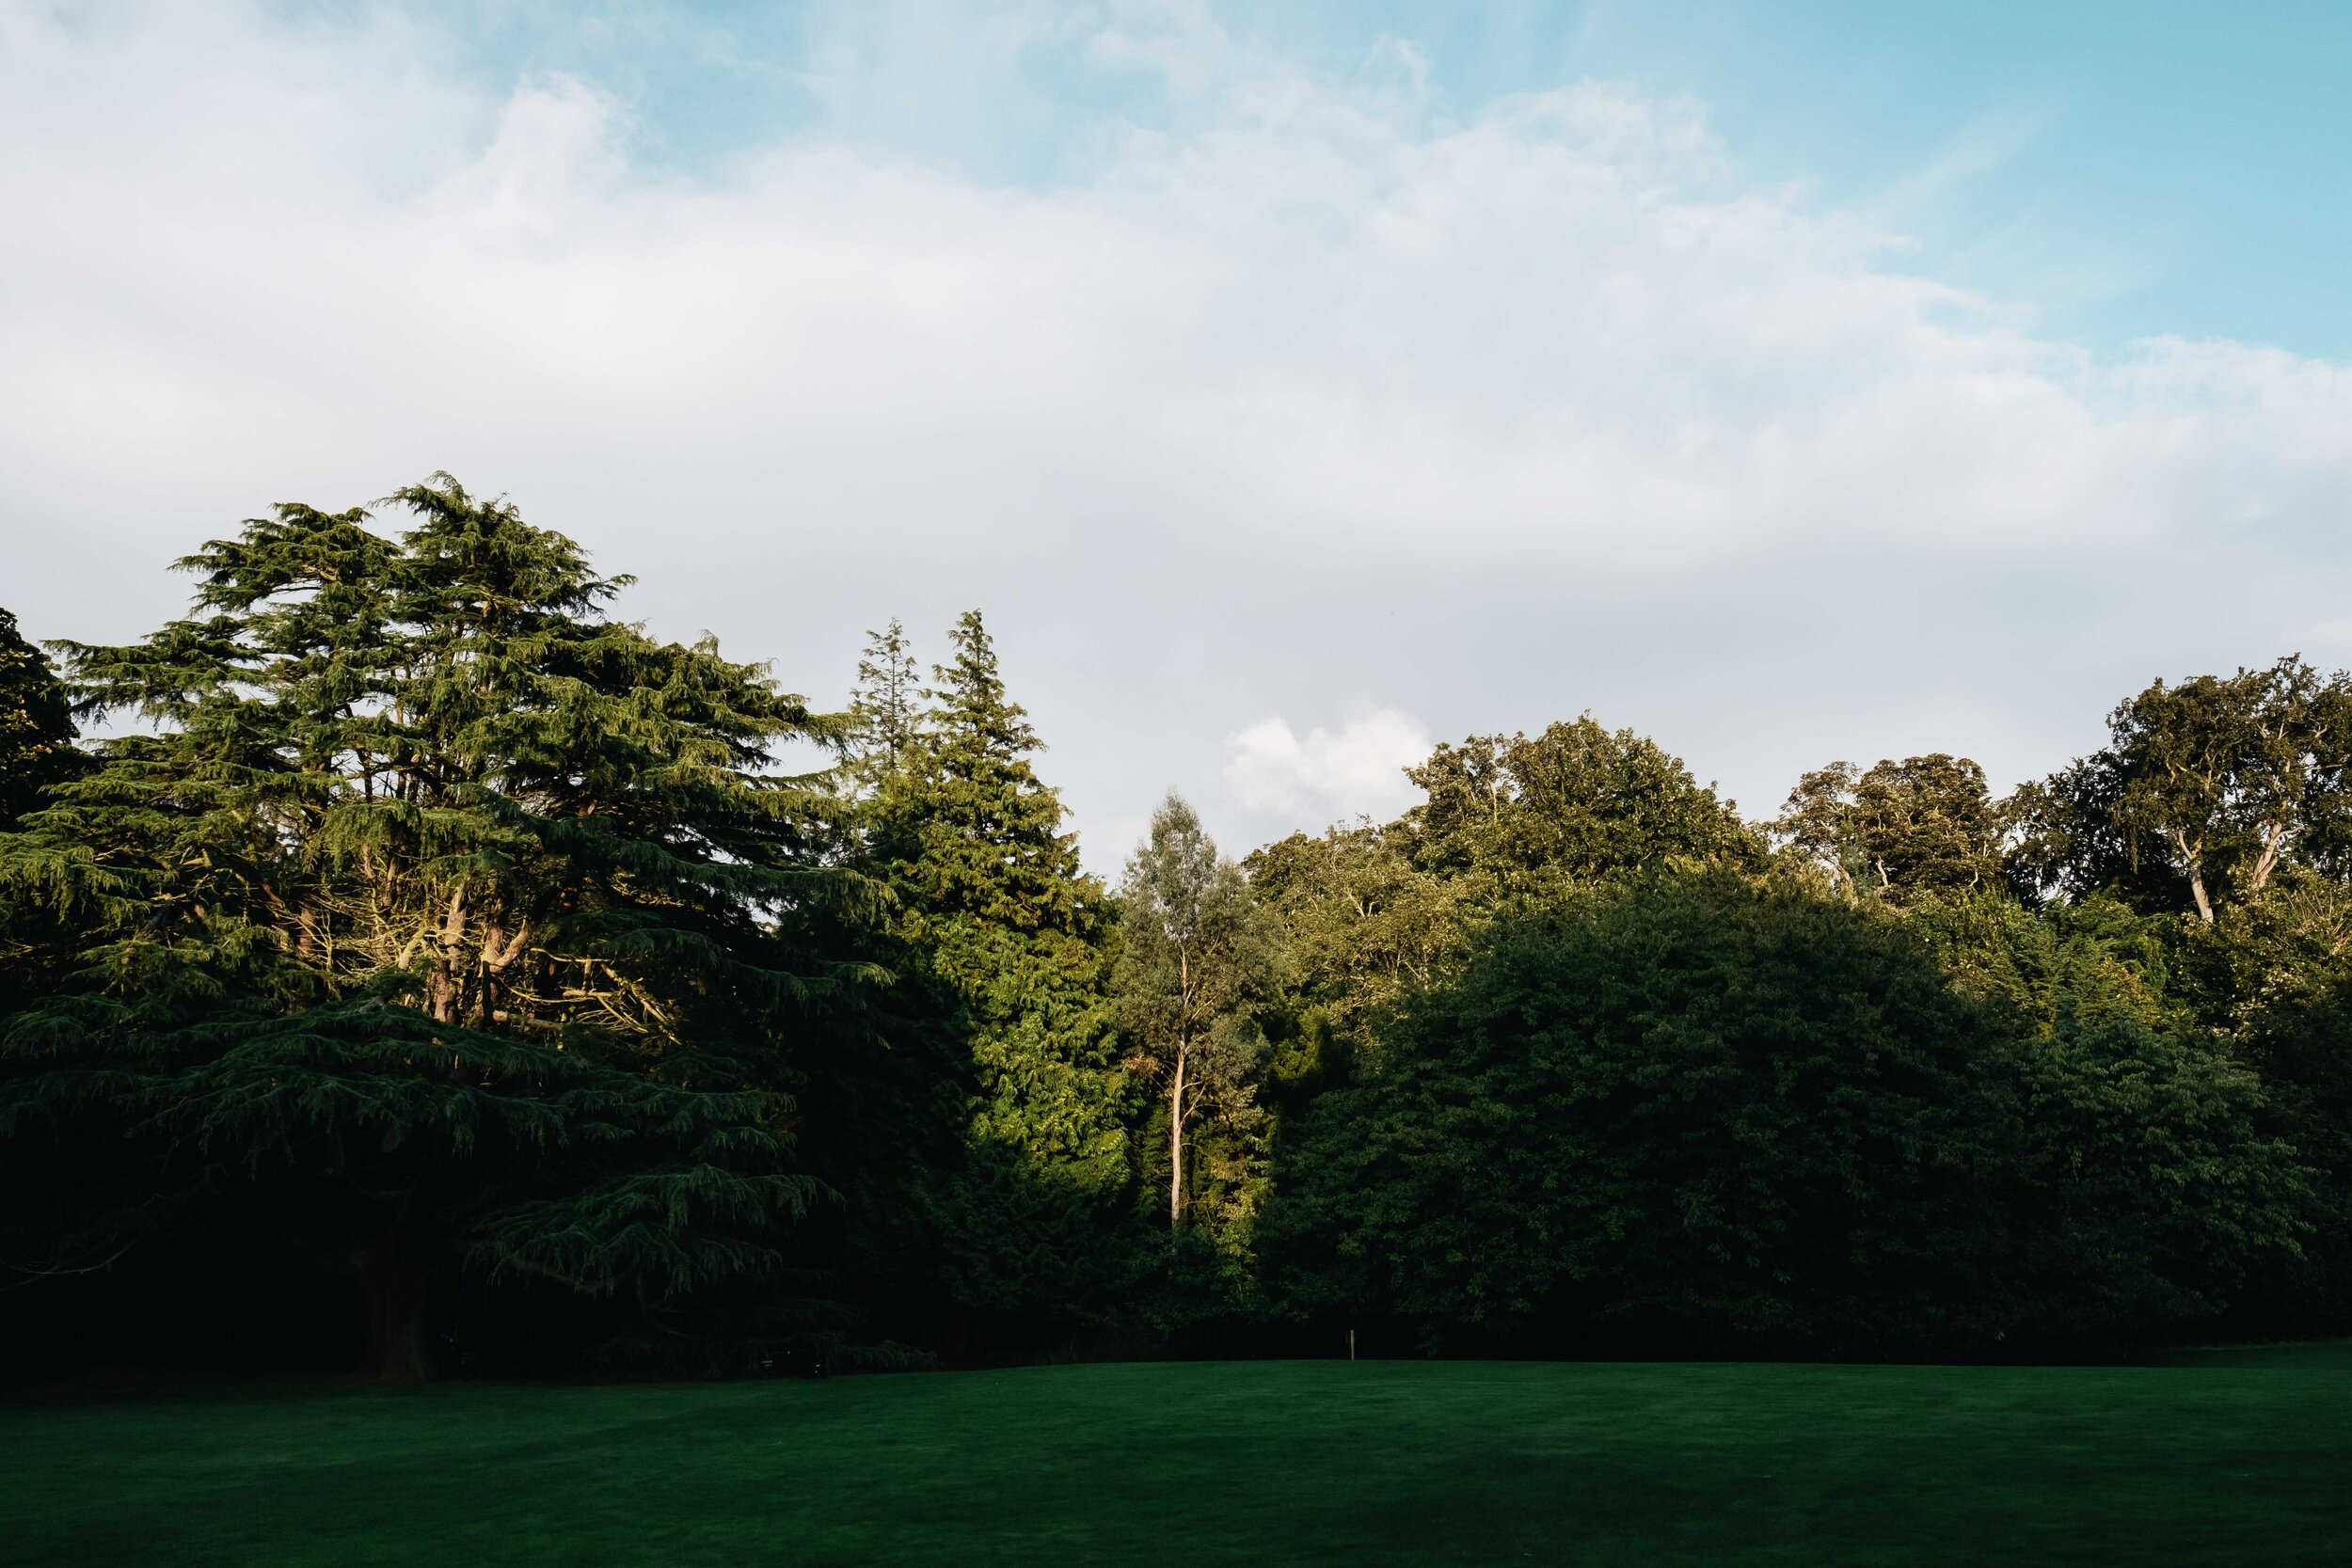 Some trees surrounding the periphery of the main garden of Cambo Country House and Estate